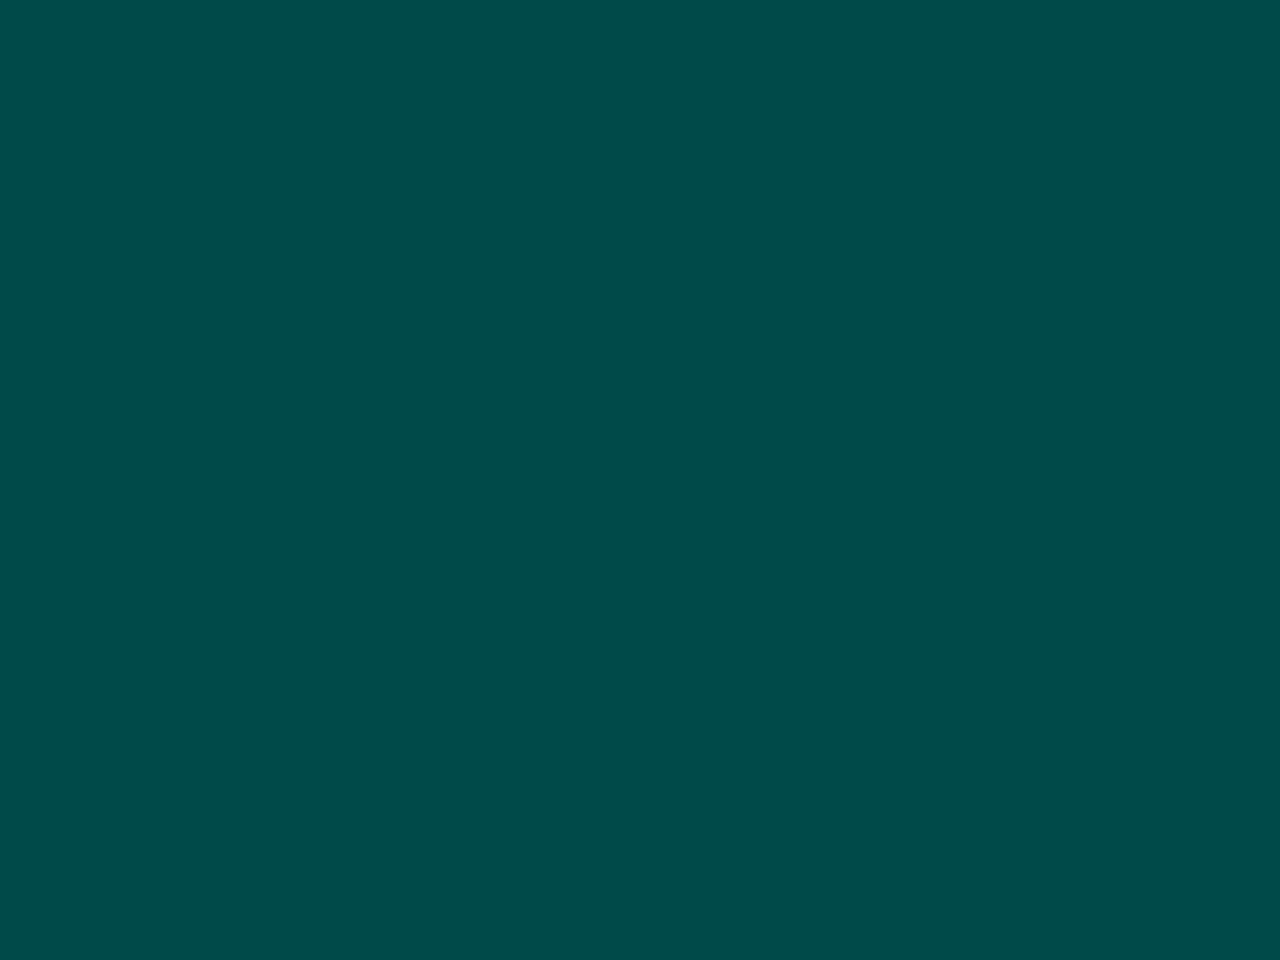 1280x960 Deep Jungle Green Solid Color Background